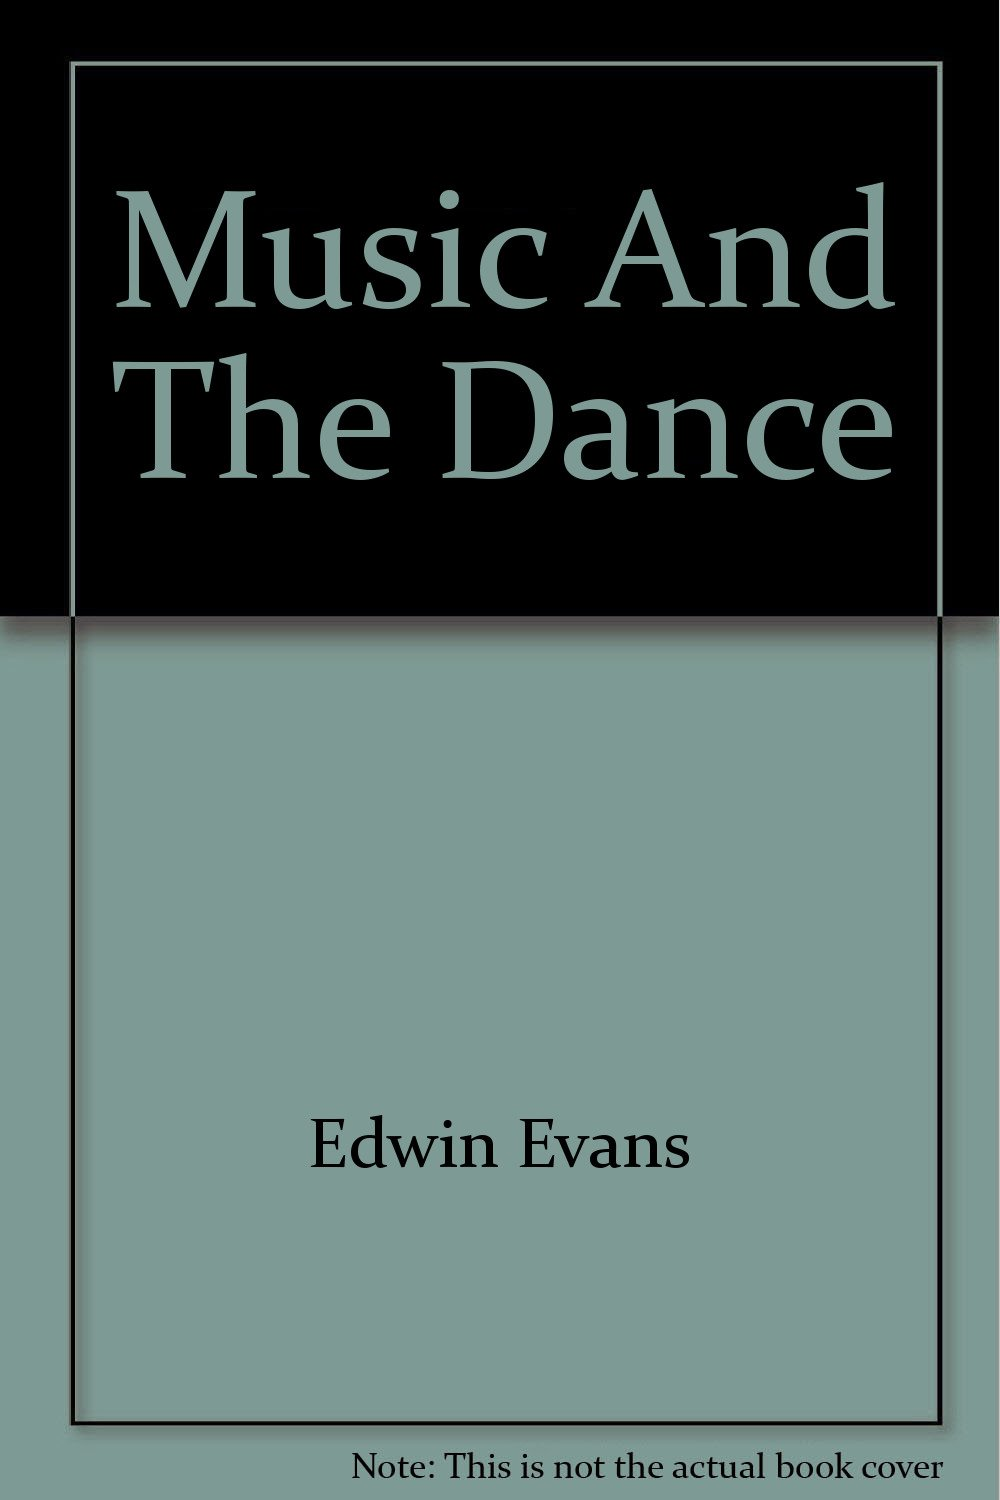 Music And The Dance